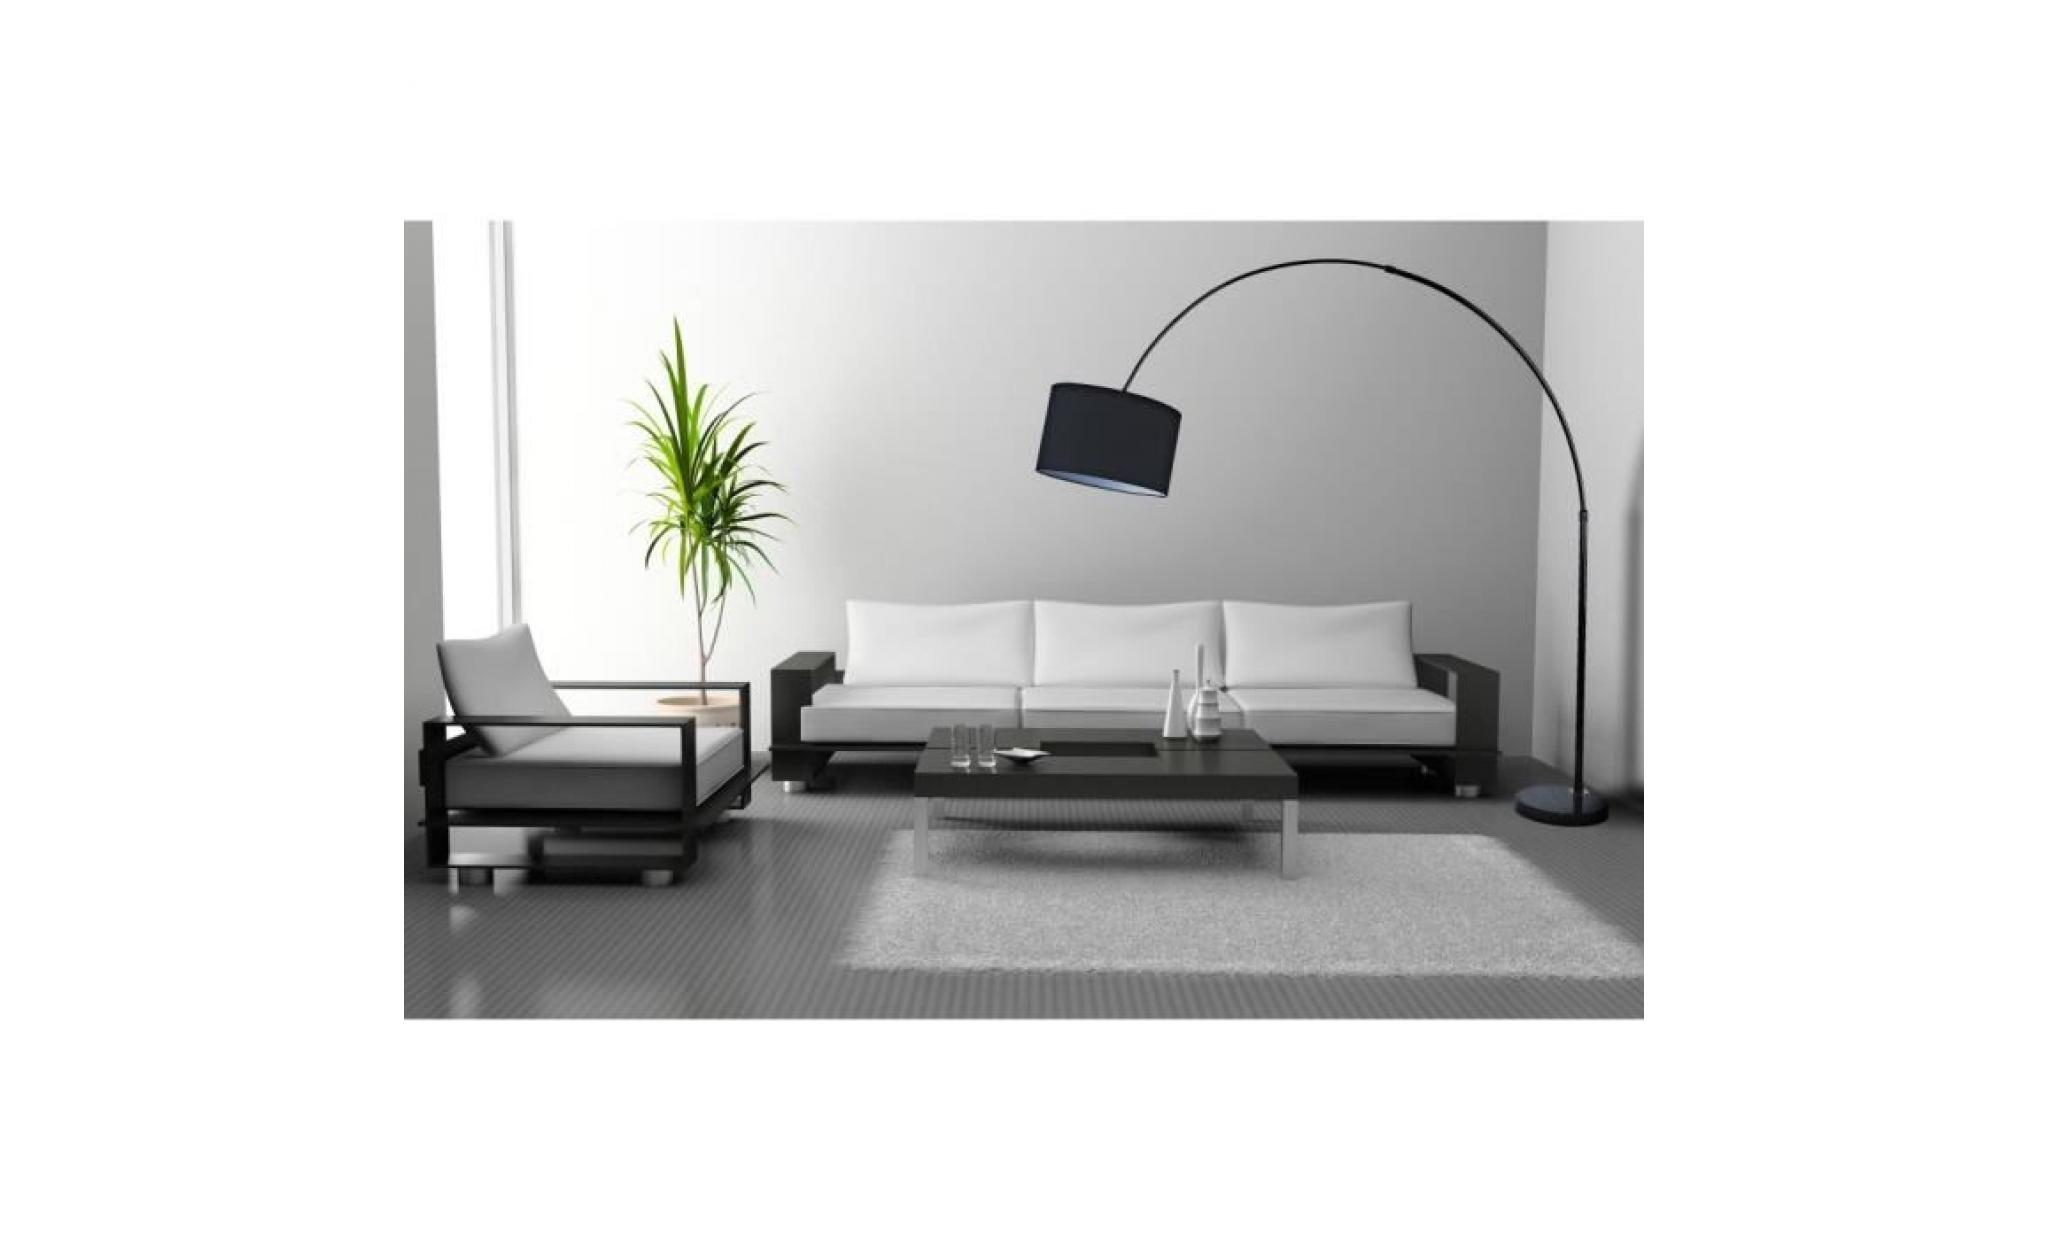 arno lampadaires arc 195 cm noir achat vente lampadaire pas cher couleur et. Black Bedroom Furniture Sets. Home Design Ideas